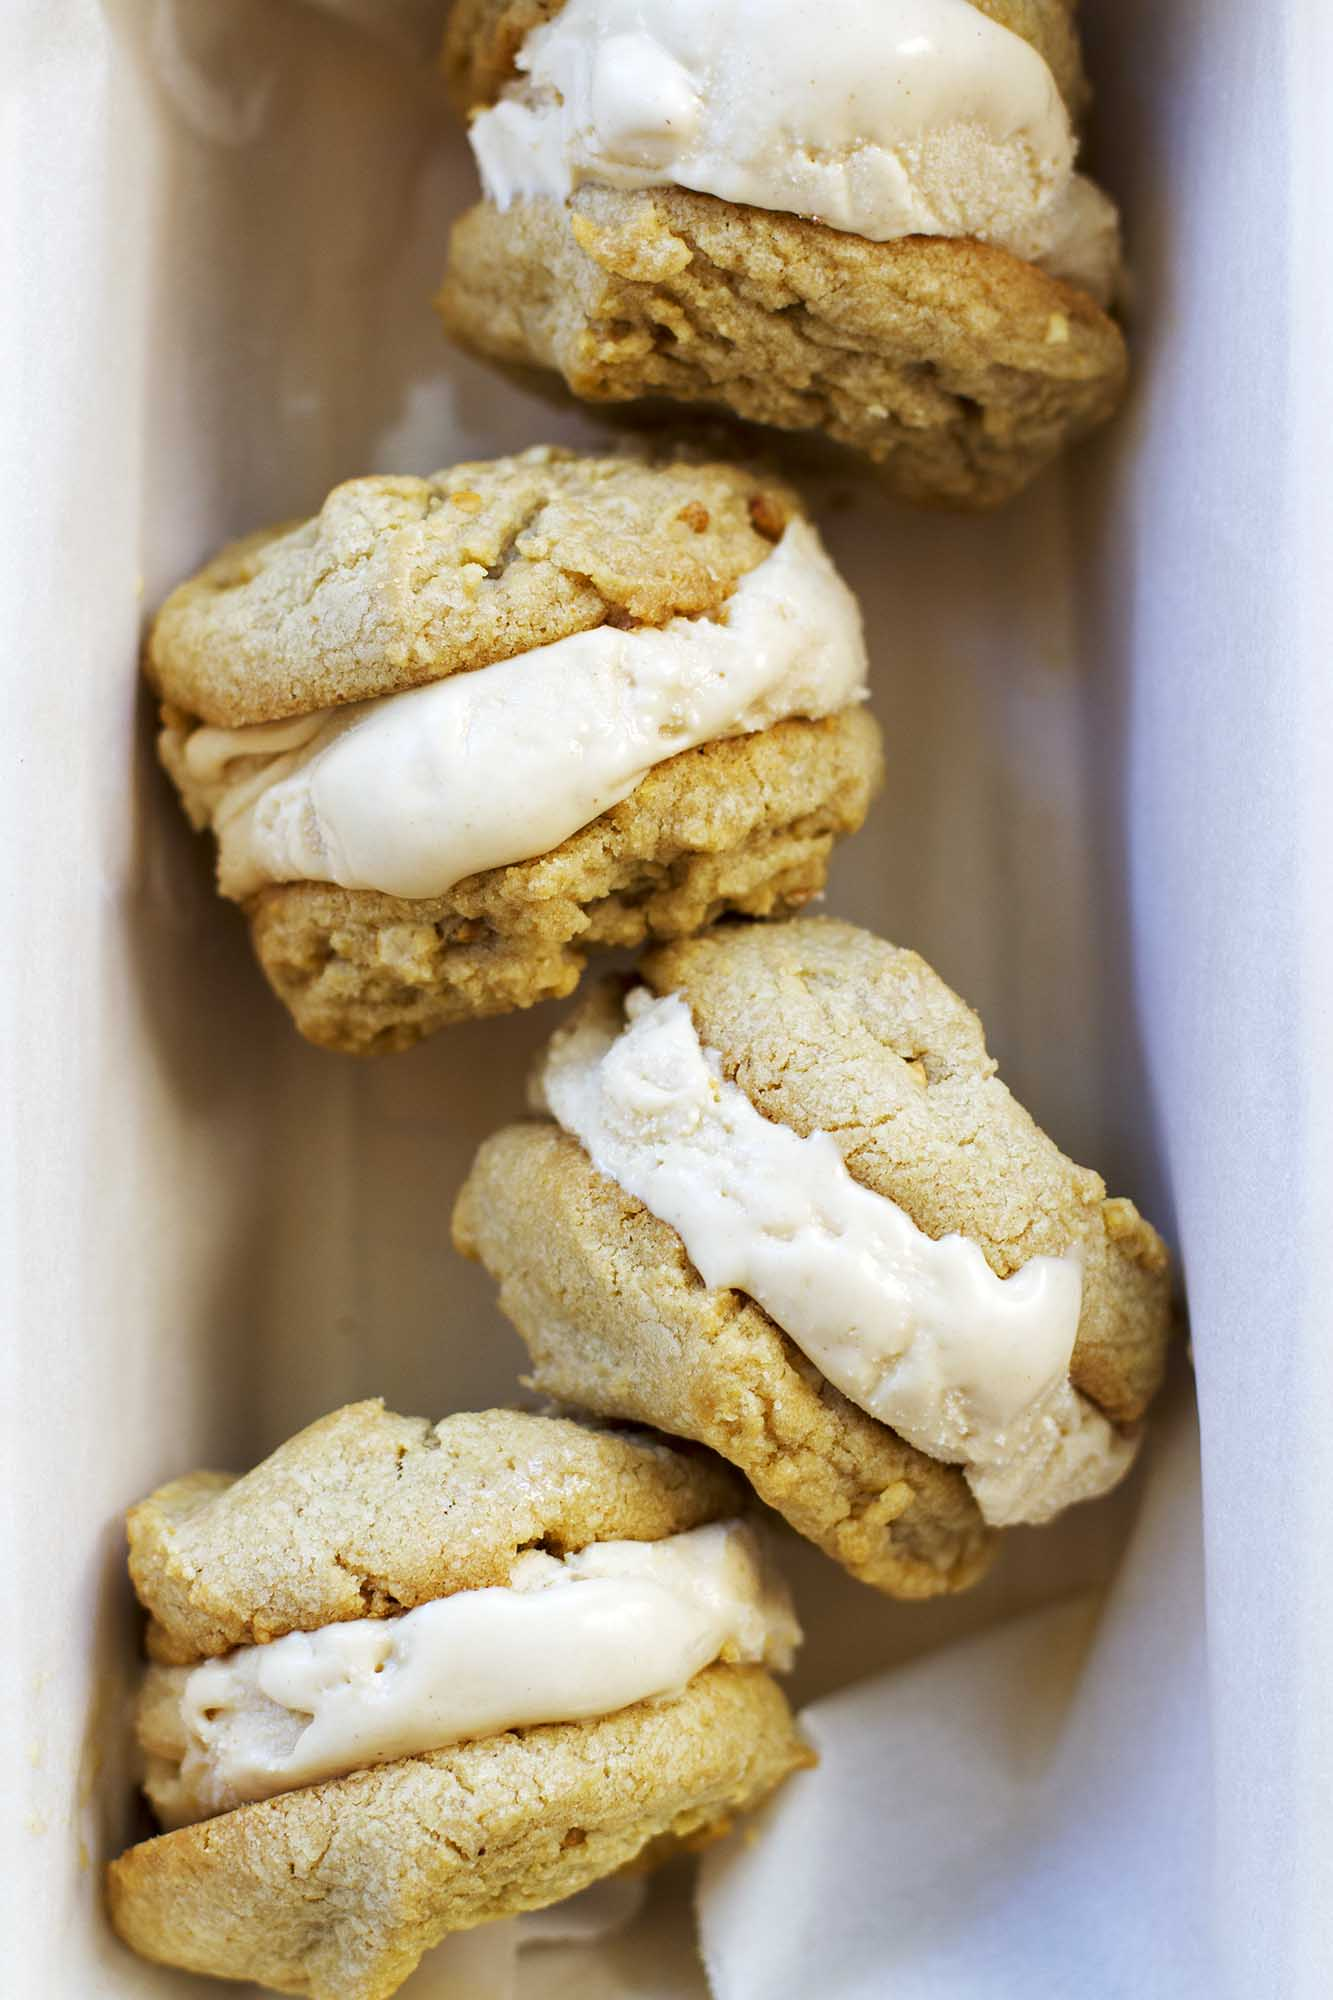 Toasted Marshmallow Peanut Butter Ice Cream Sandwiches | girlversusdough.com @girlversusdough